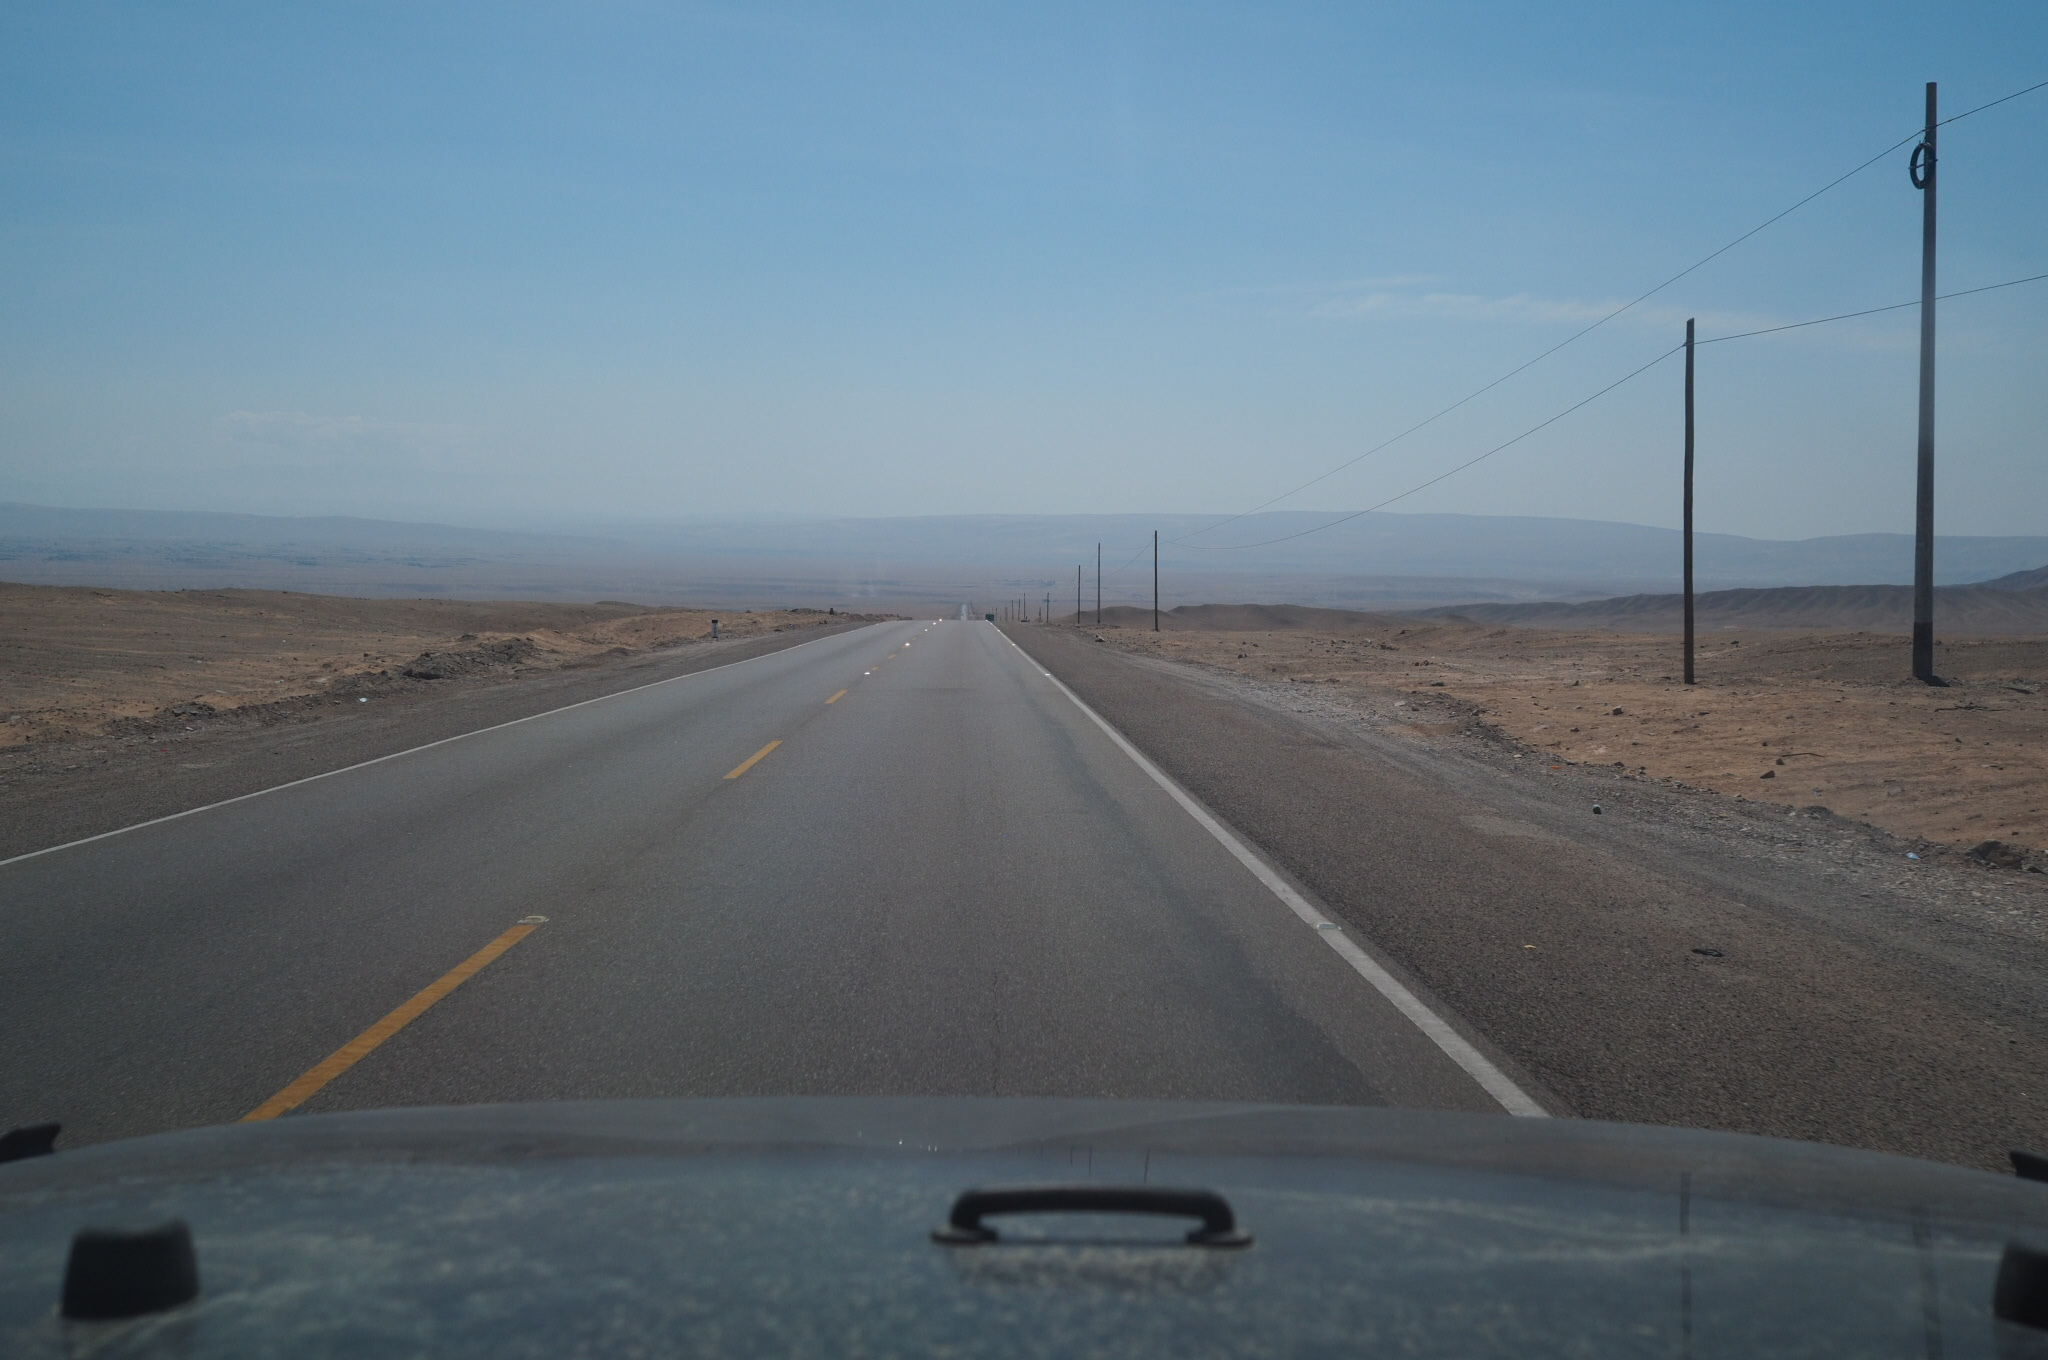 Cockpit view of the panamerican highway in Peru.